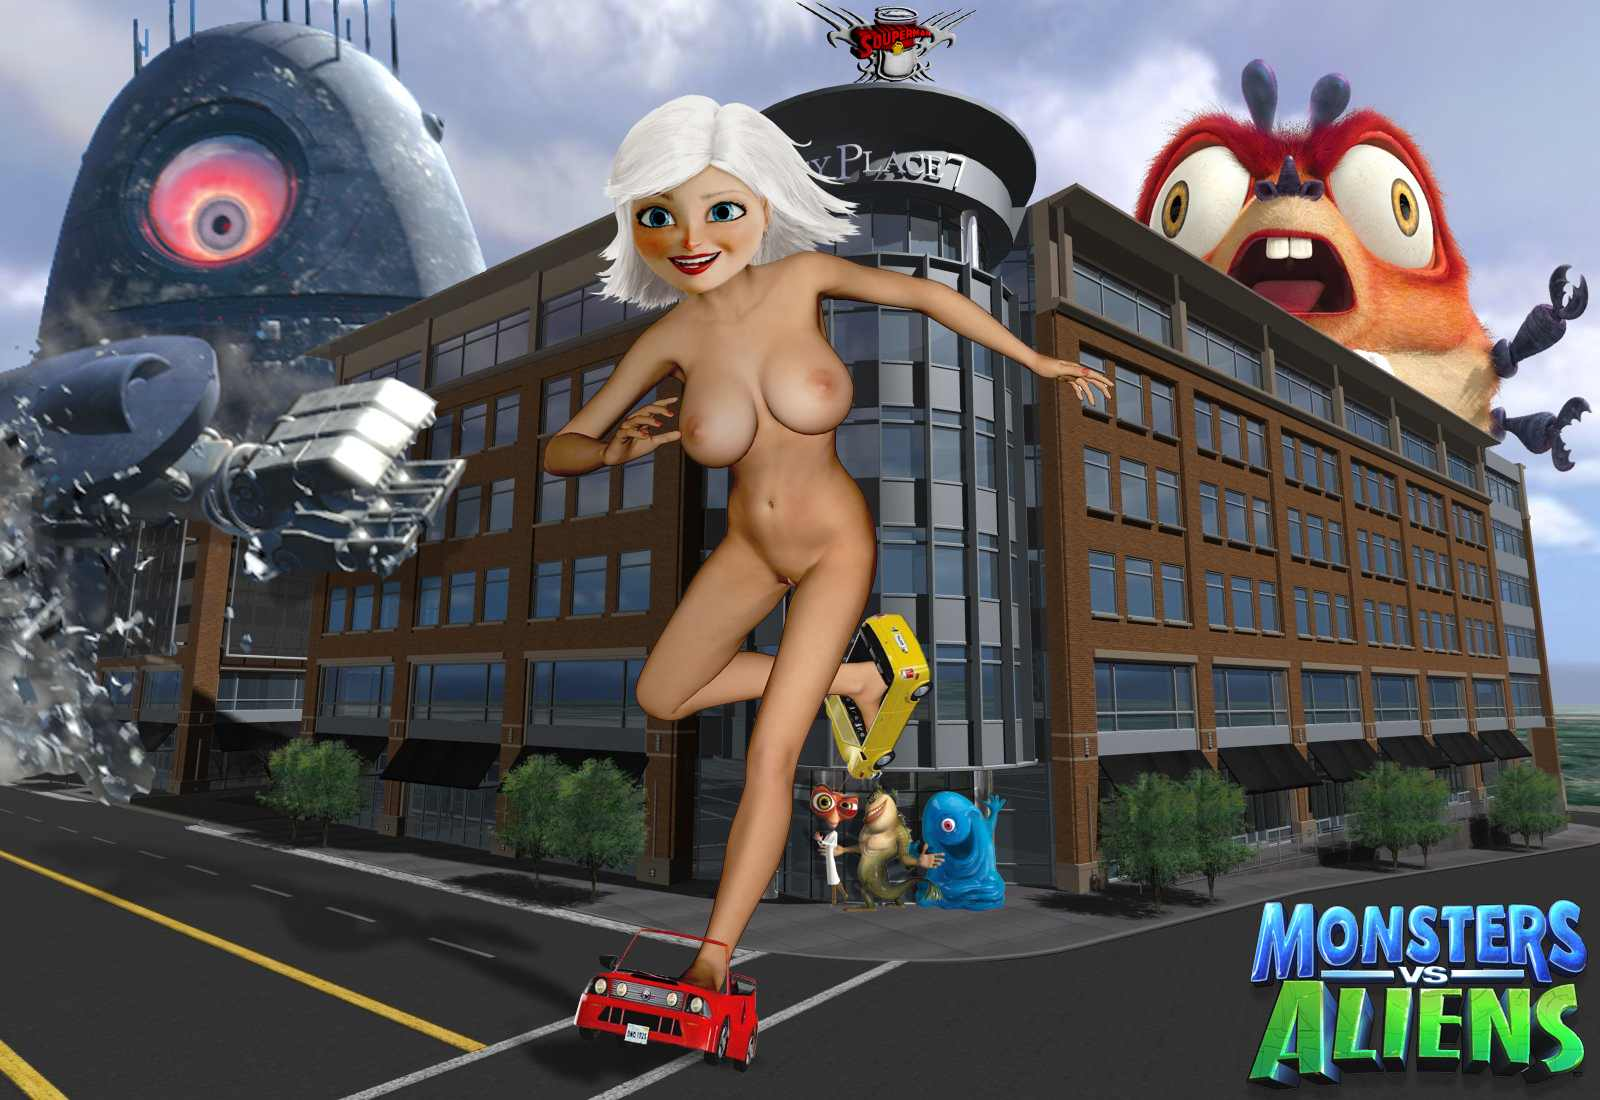 Monster vs aliens sex nude hentai pics